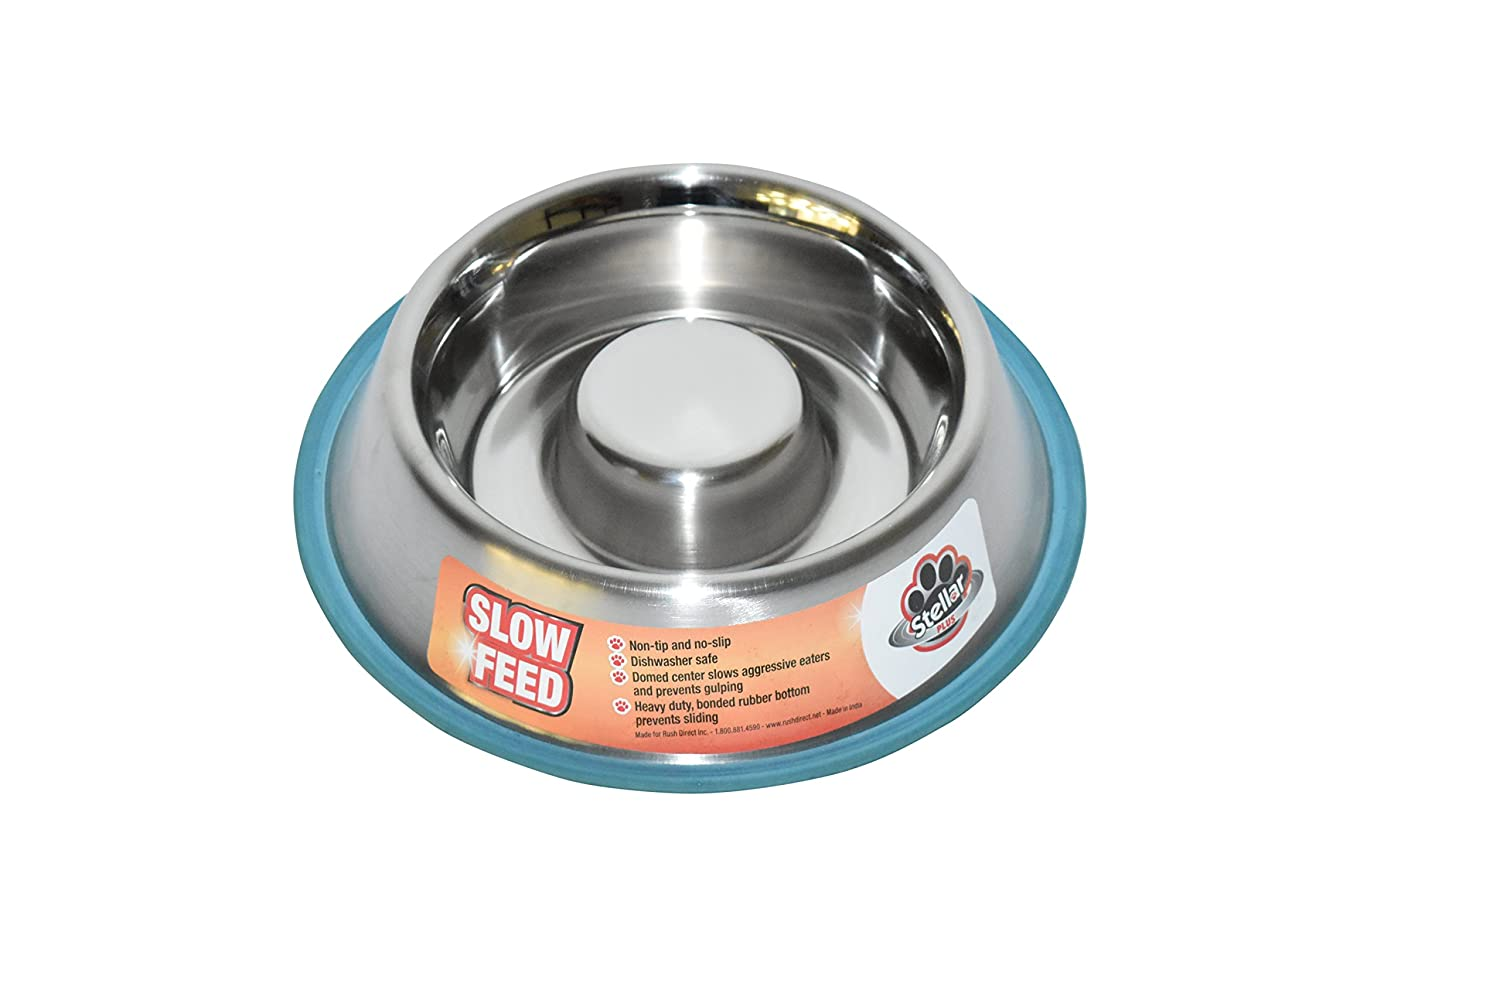 Stellar Bowls Health Care Slow Feed Non Tip Anti Skid Dish with 100% Silicon Bonded Rubber Ring, 45 oz